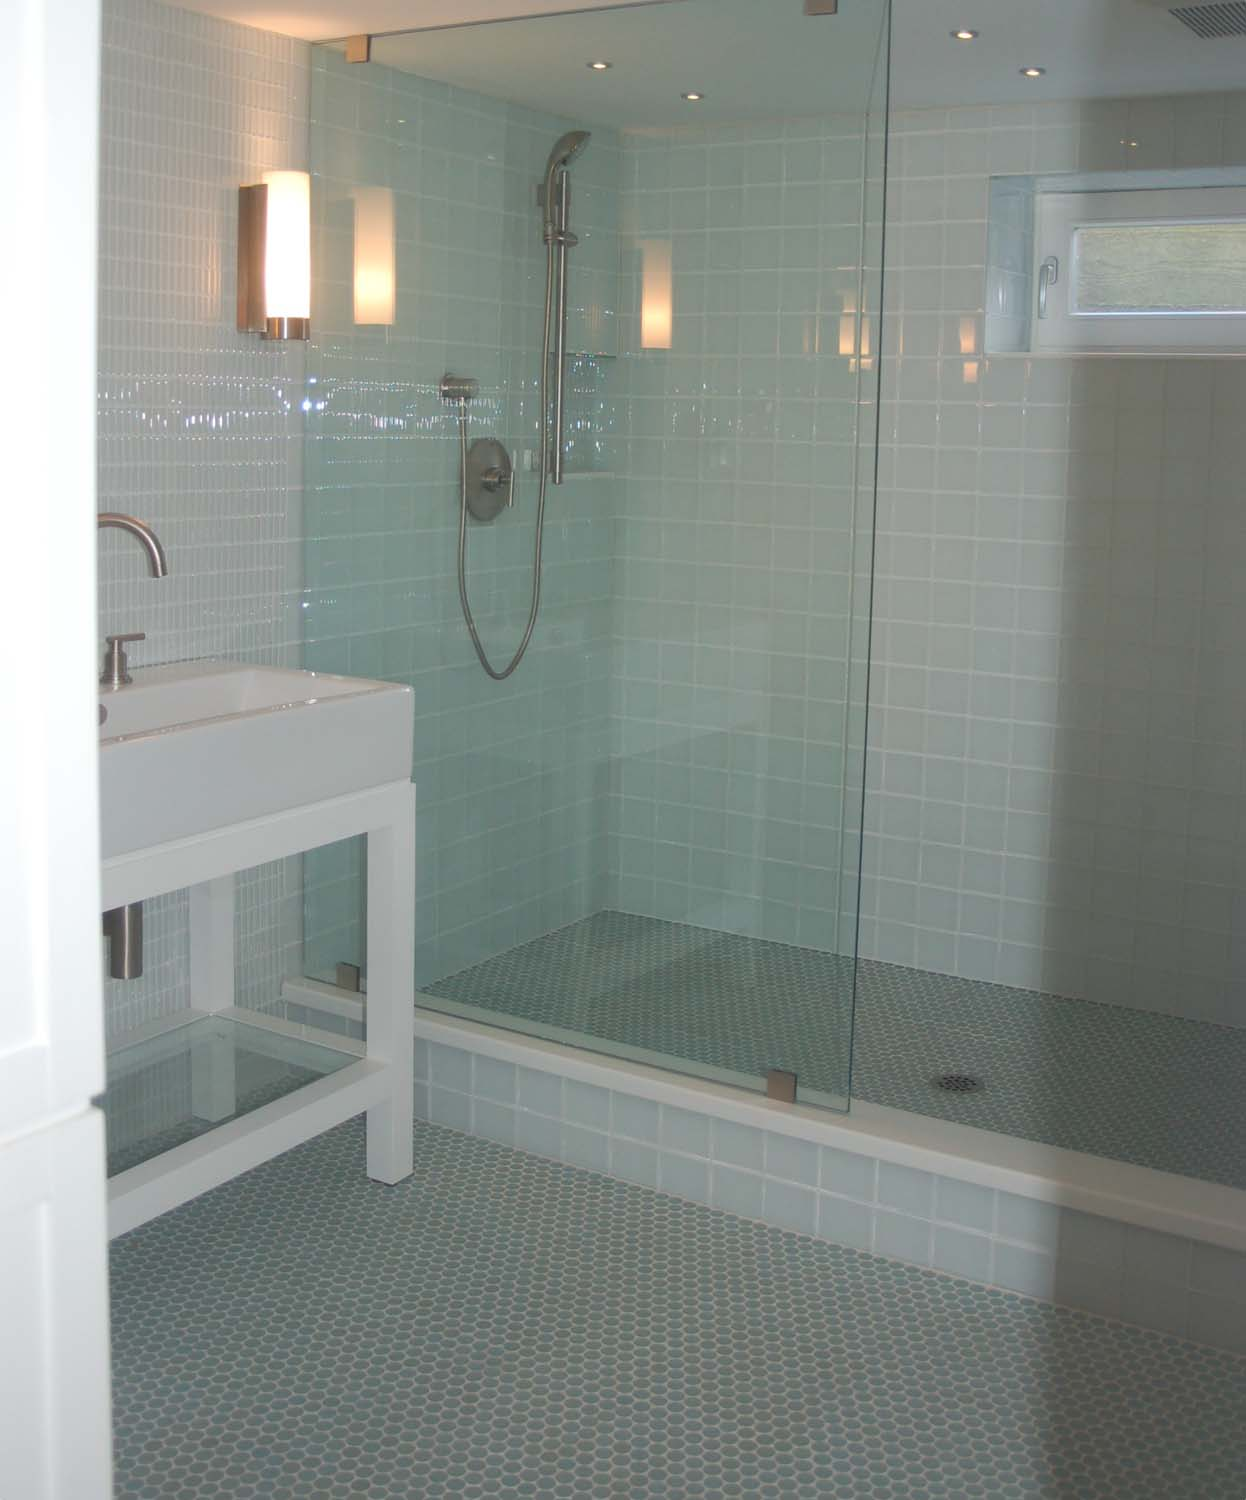 Glass Tiles In Bathroom: What The Homeowners Need To Know About The Proper